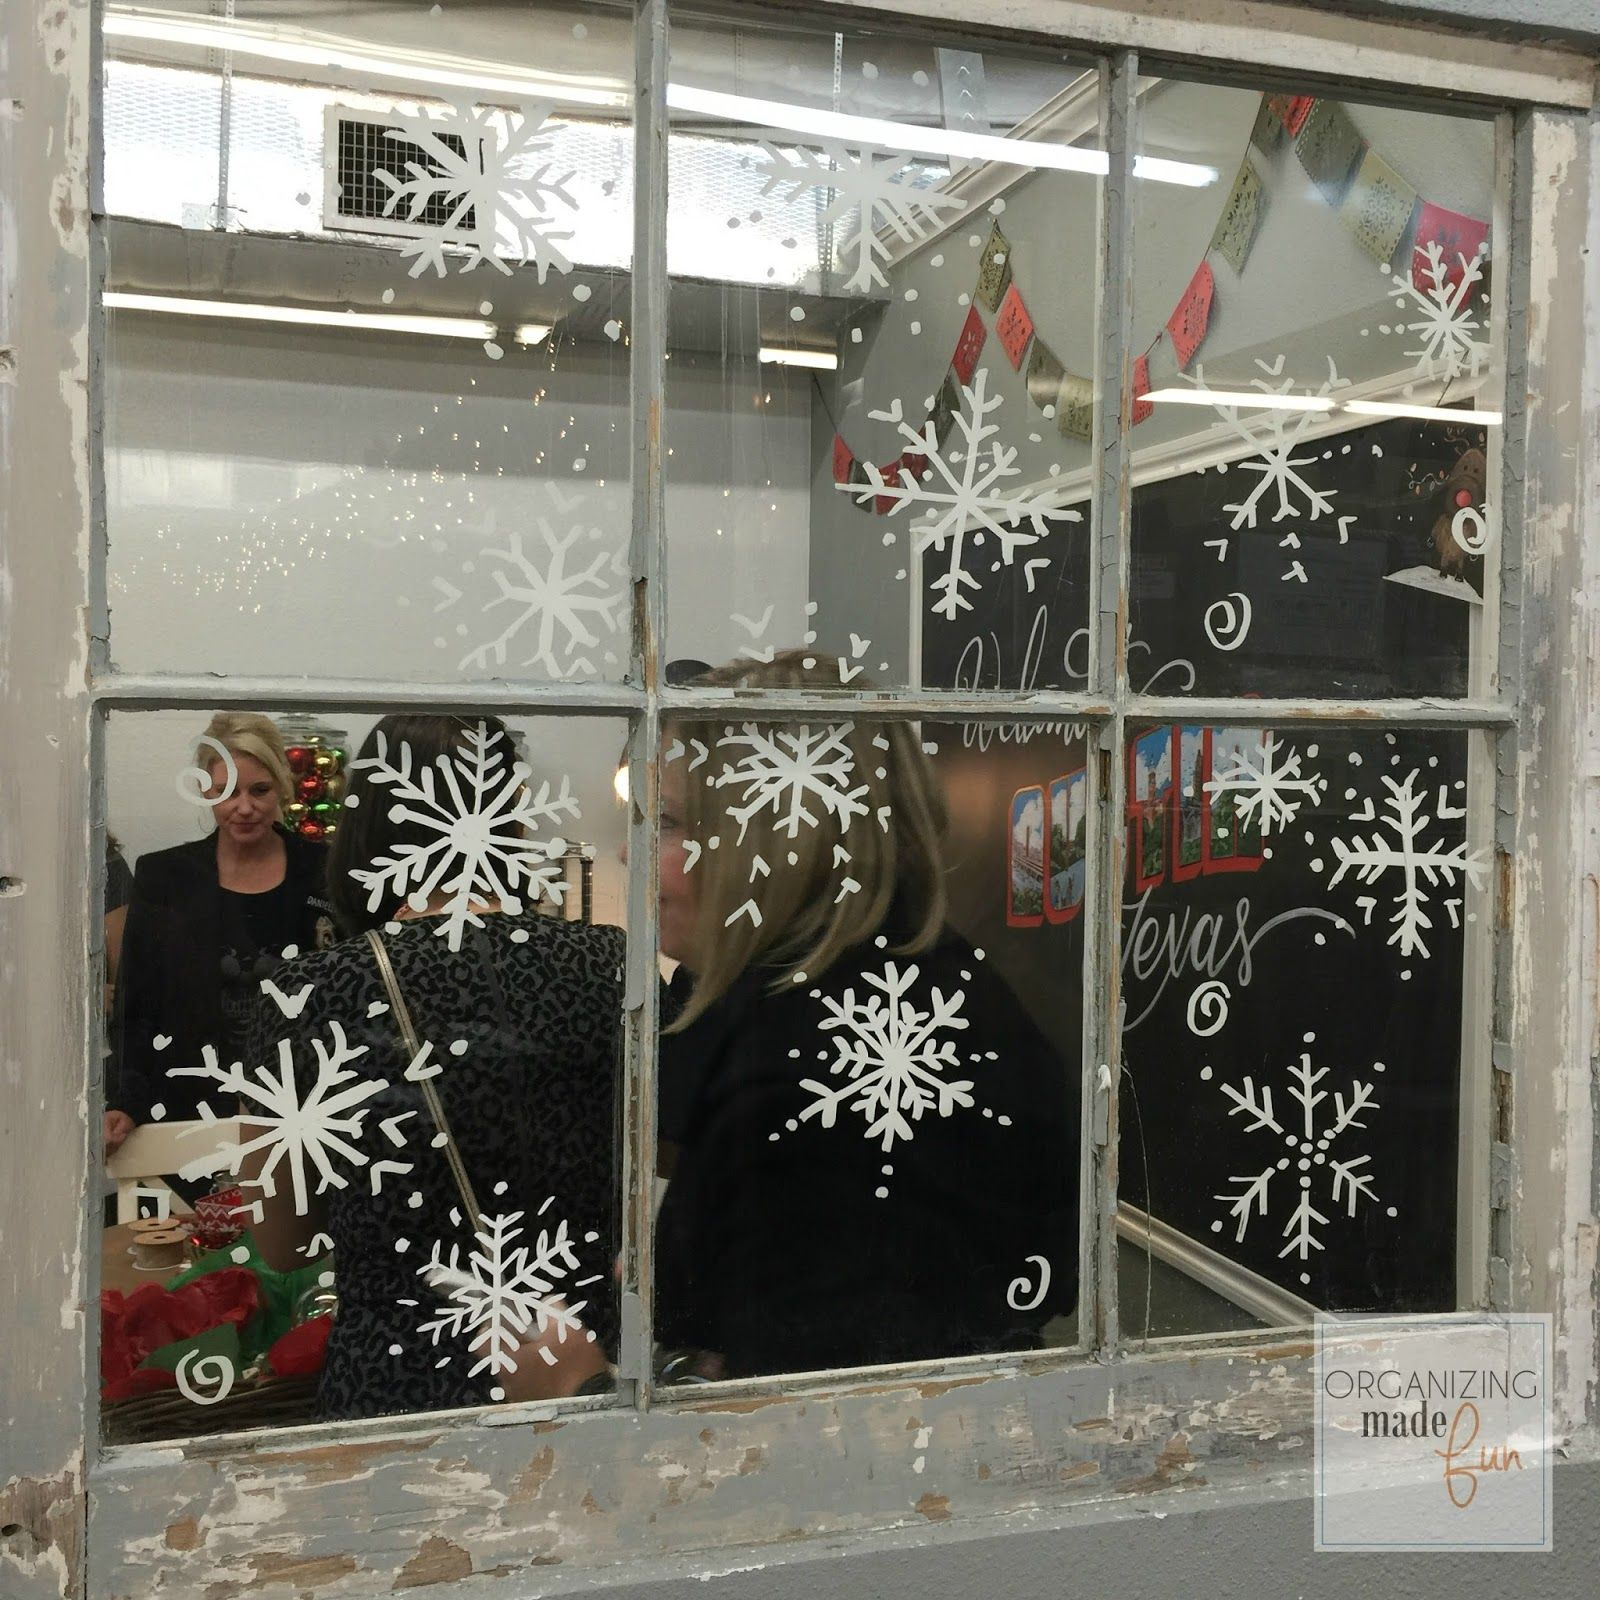 How To Use Chalk Ink Markers Properly Great Tips And Tricks Organizing Made Christmas Window Decorations Christmas Window Painting Painting On Glass Windows